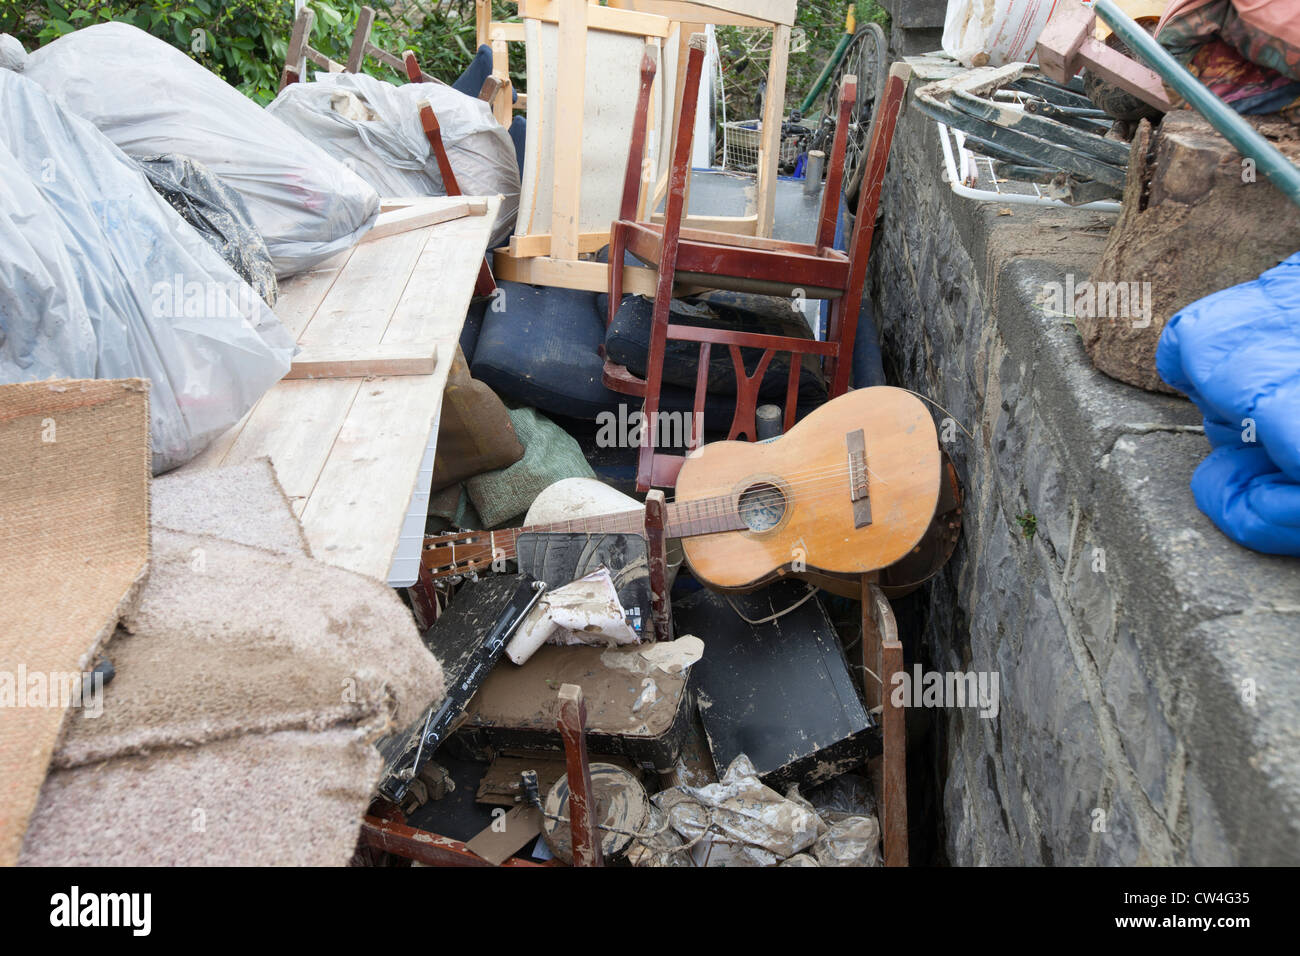 Ruined possessions piled high outside a property in Talybont which was hit by flash flooding. - Stock Image